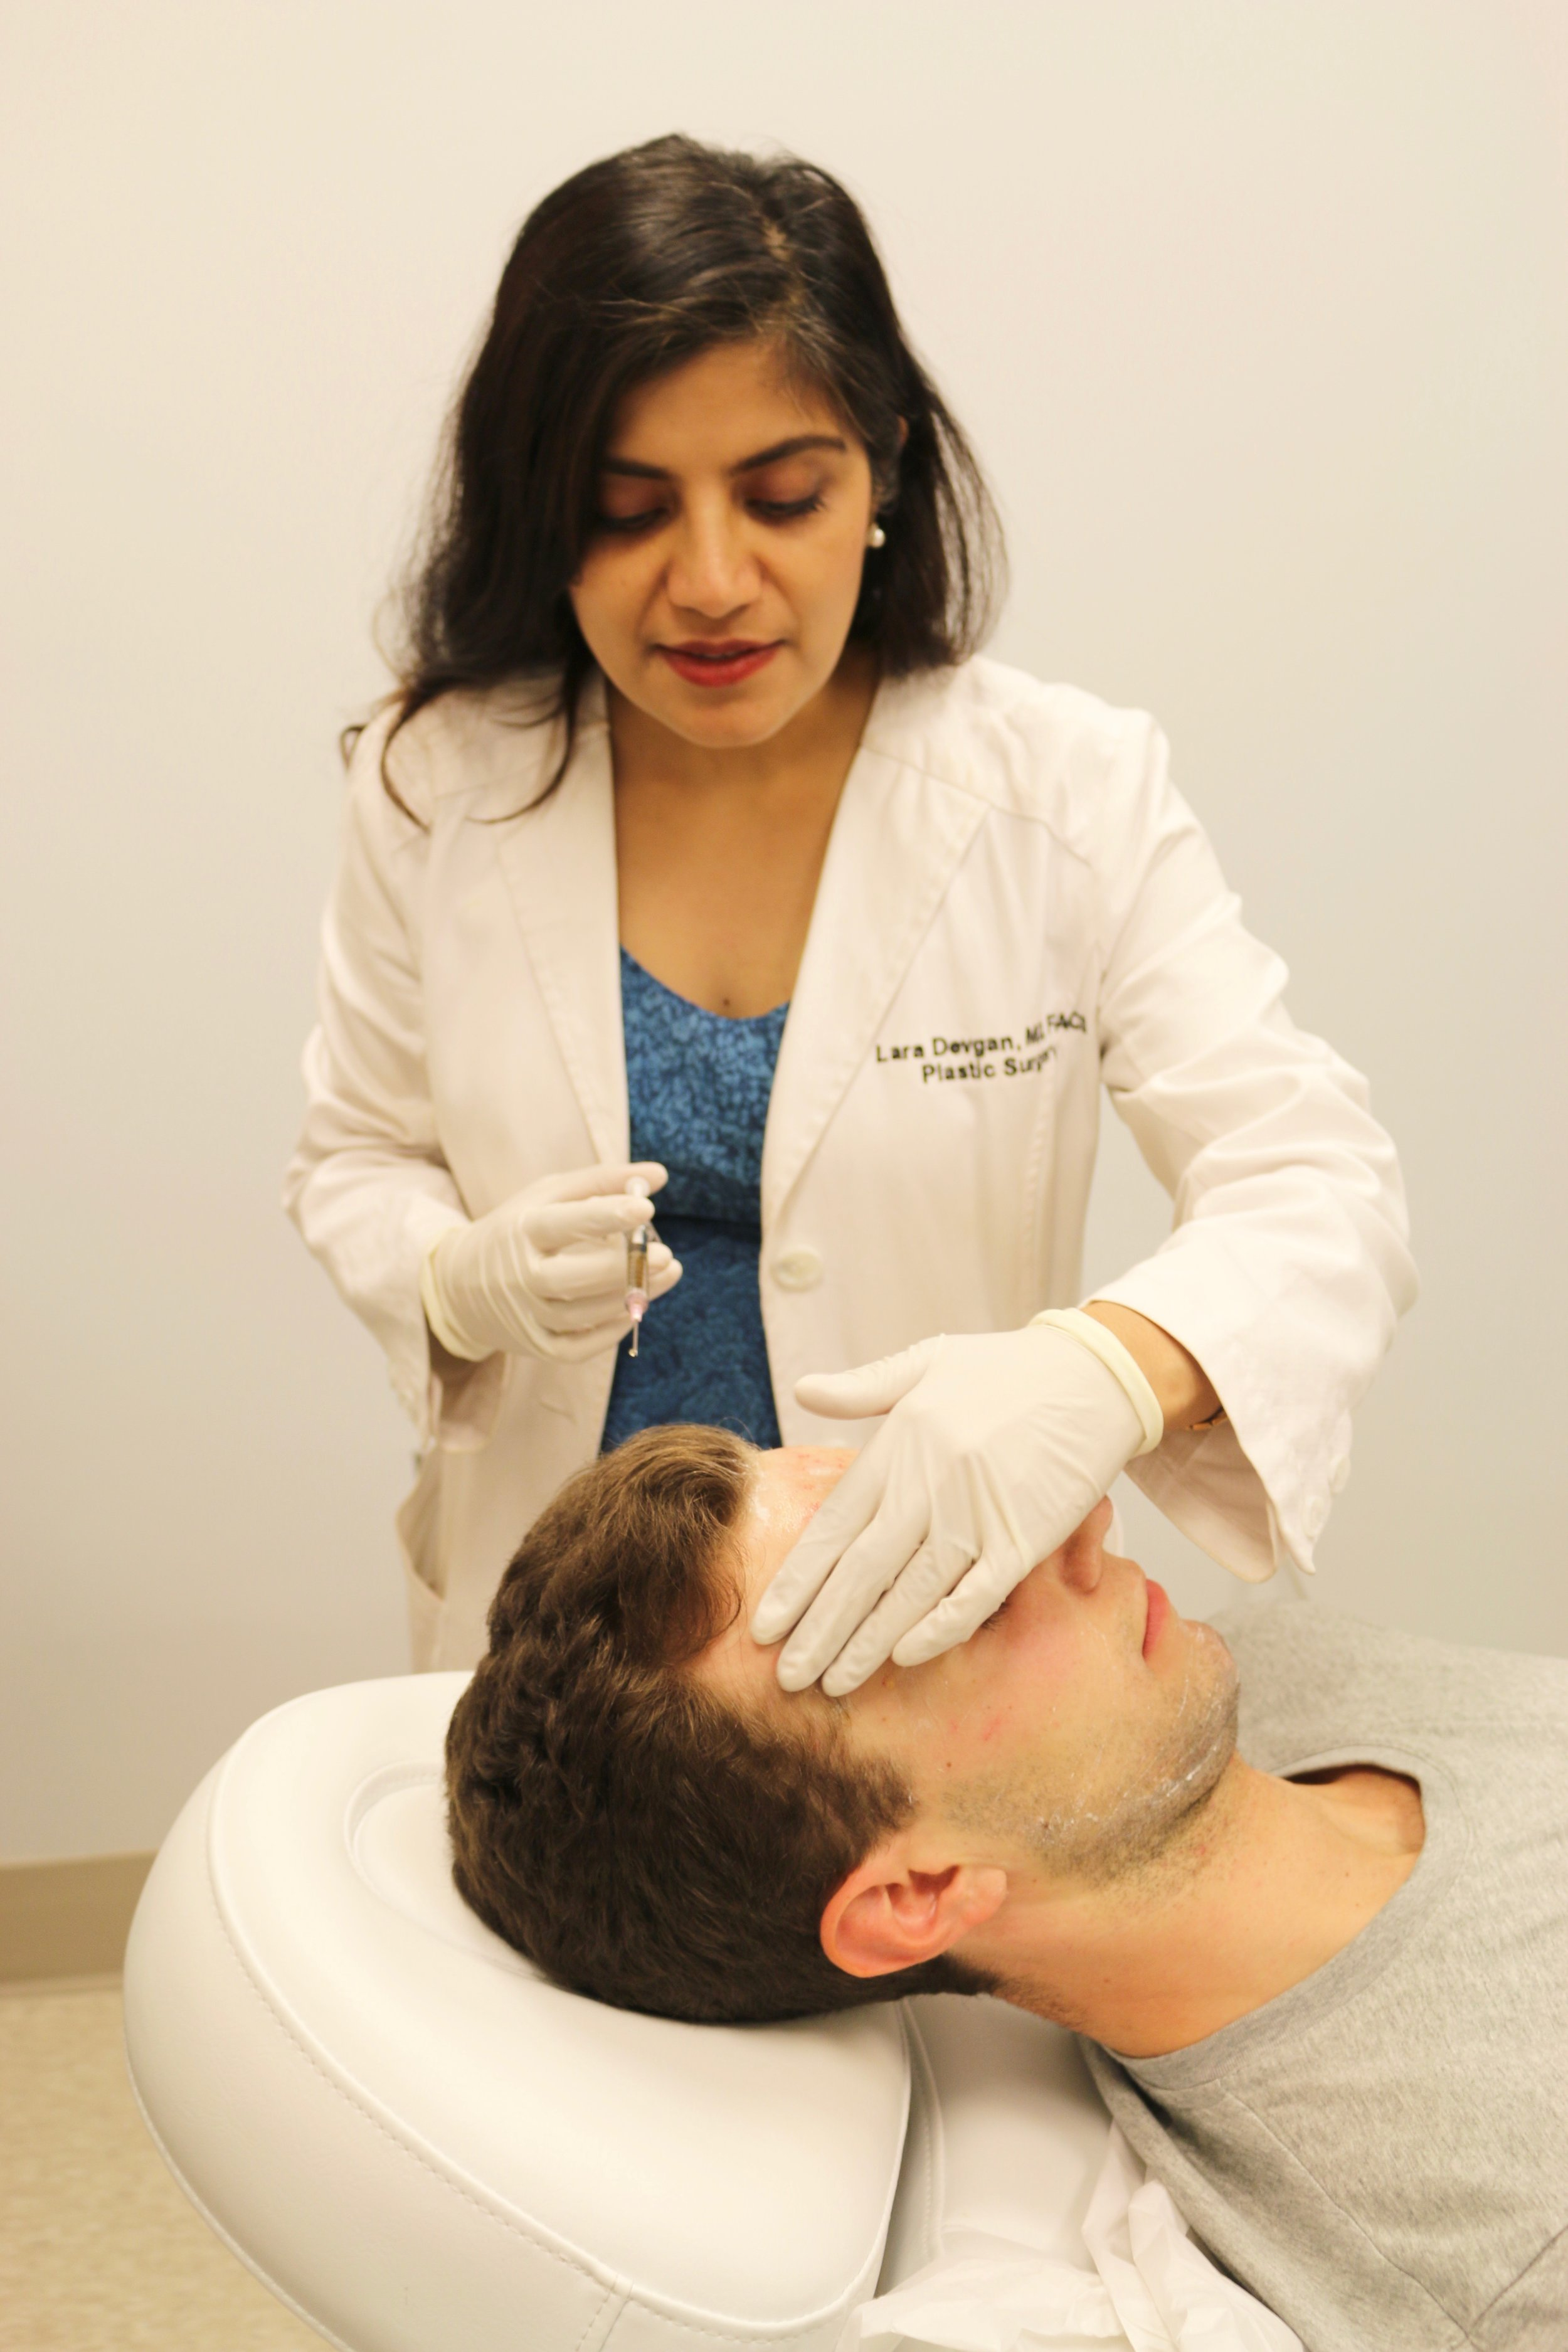 Dr. Devgan with a patient in her New York City office